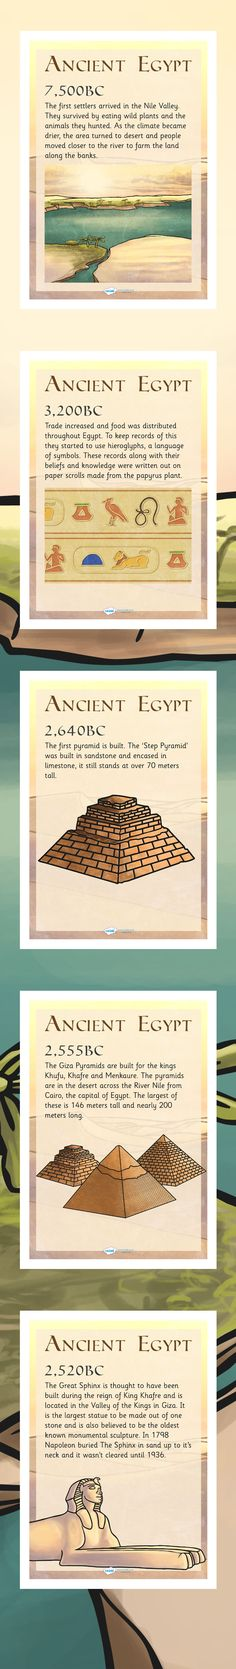 KS2 Ancient Egypt Timeline Posters